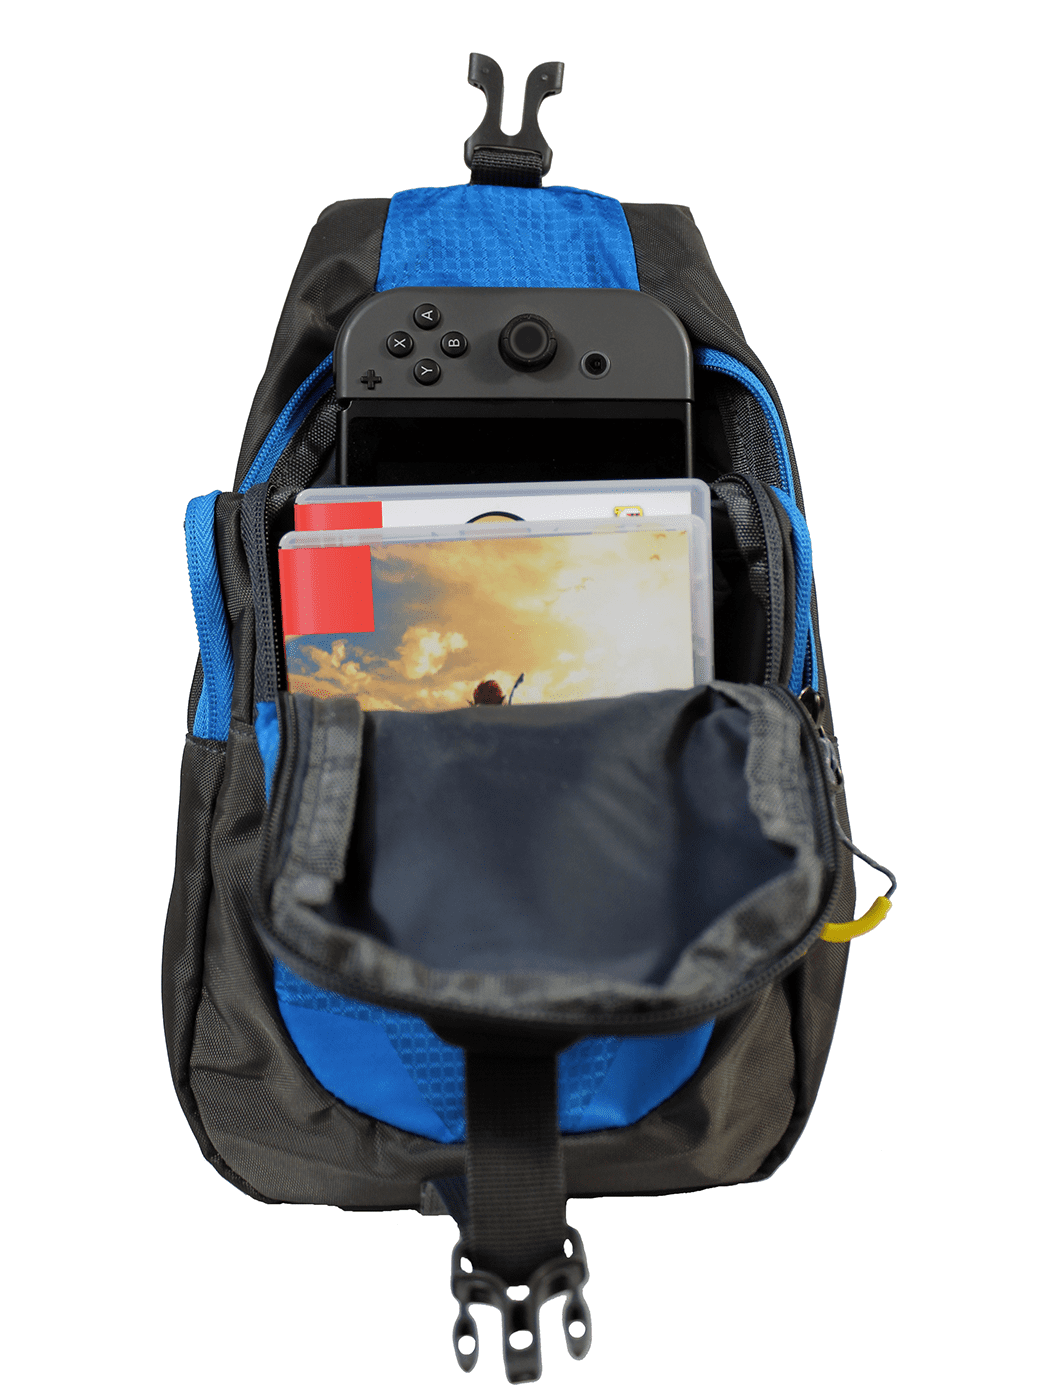 HDE Nintendo Switch Backpack Gamer Elite Crossbody Travel Bag Holds Console Games Joy-Cons and More (Blue) by HDE